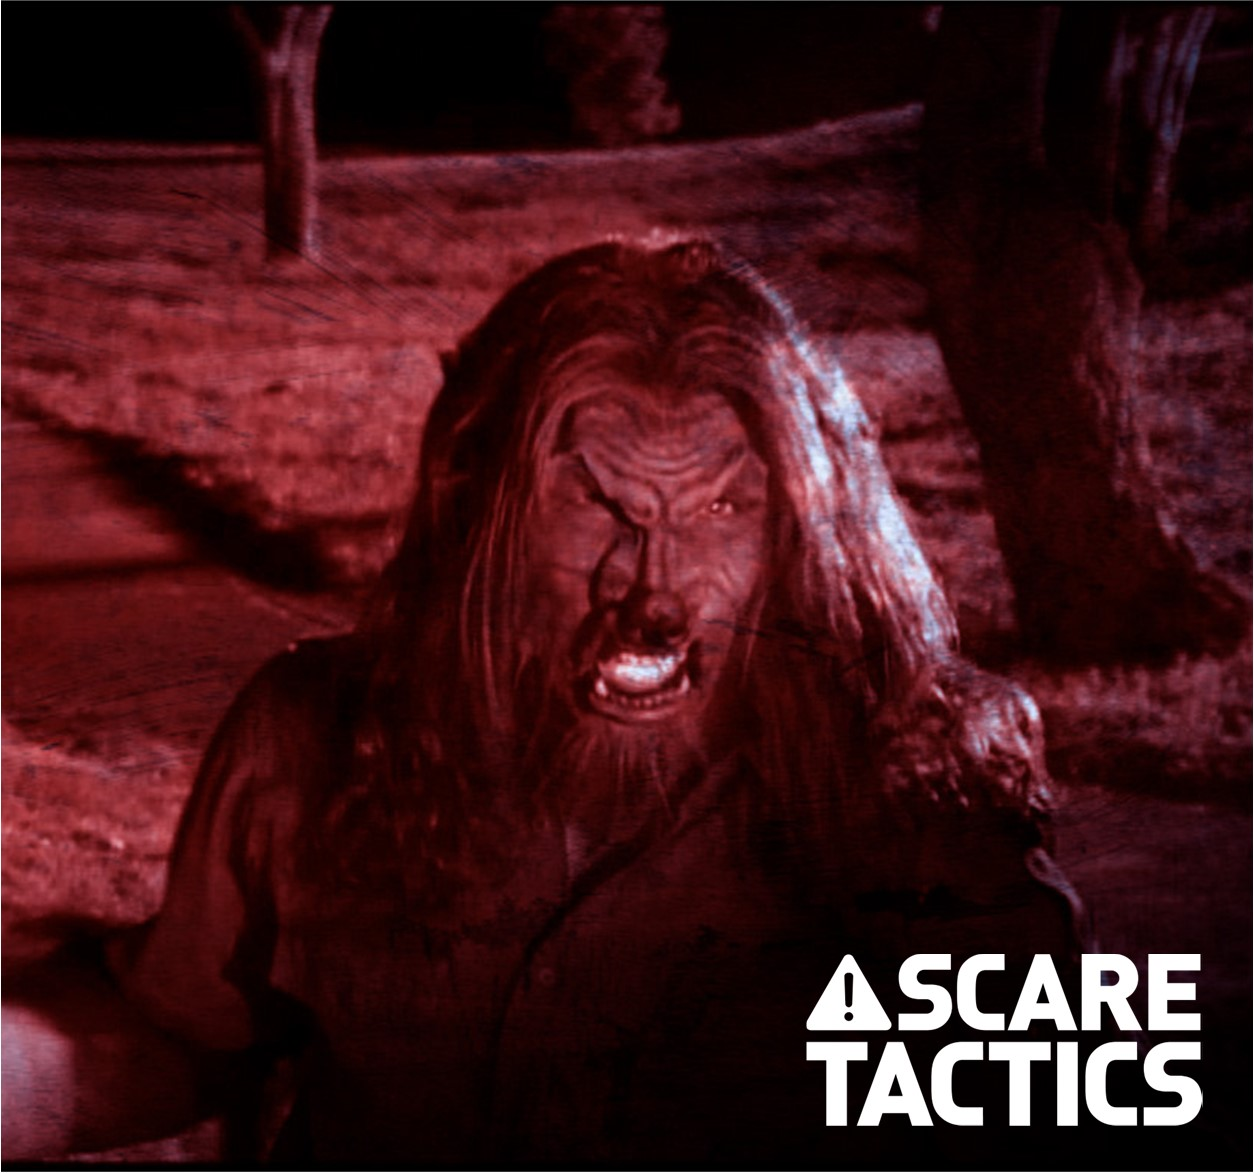 scaretacticsandchill scaretacticsandthrill scarychristmas wolfman campfirestories werewolf areyouscared youreonscaretactics scare horror lol tracymorgan laurenash uncensored wtf holyshit prank prankshow comedy hiddencamera